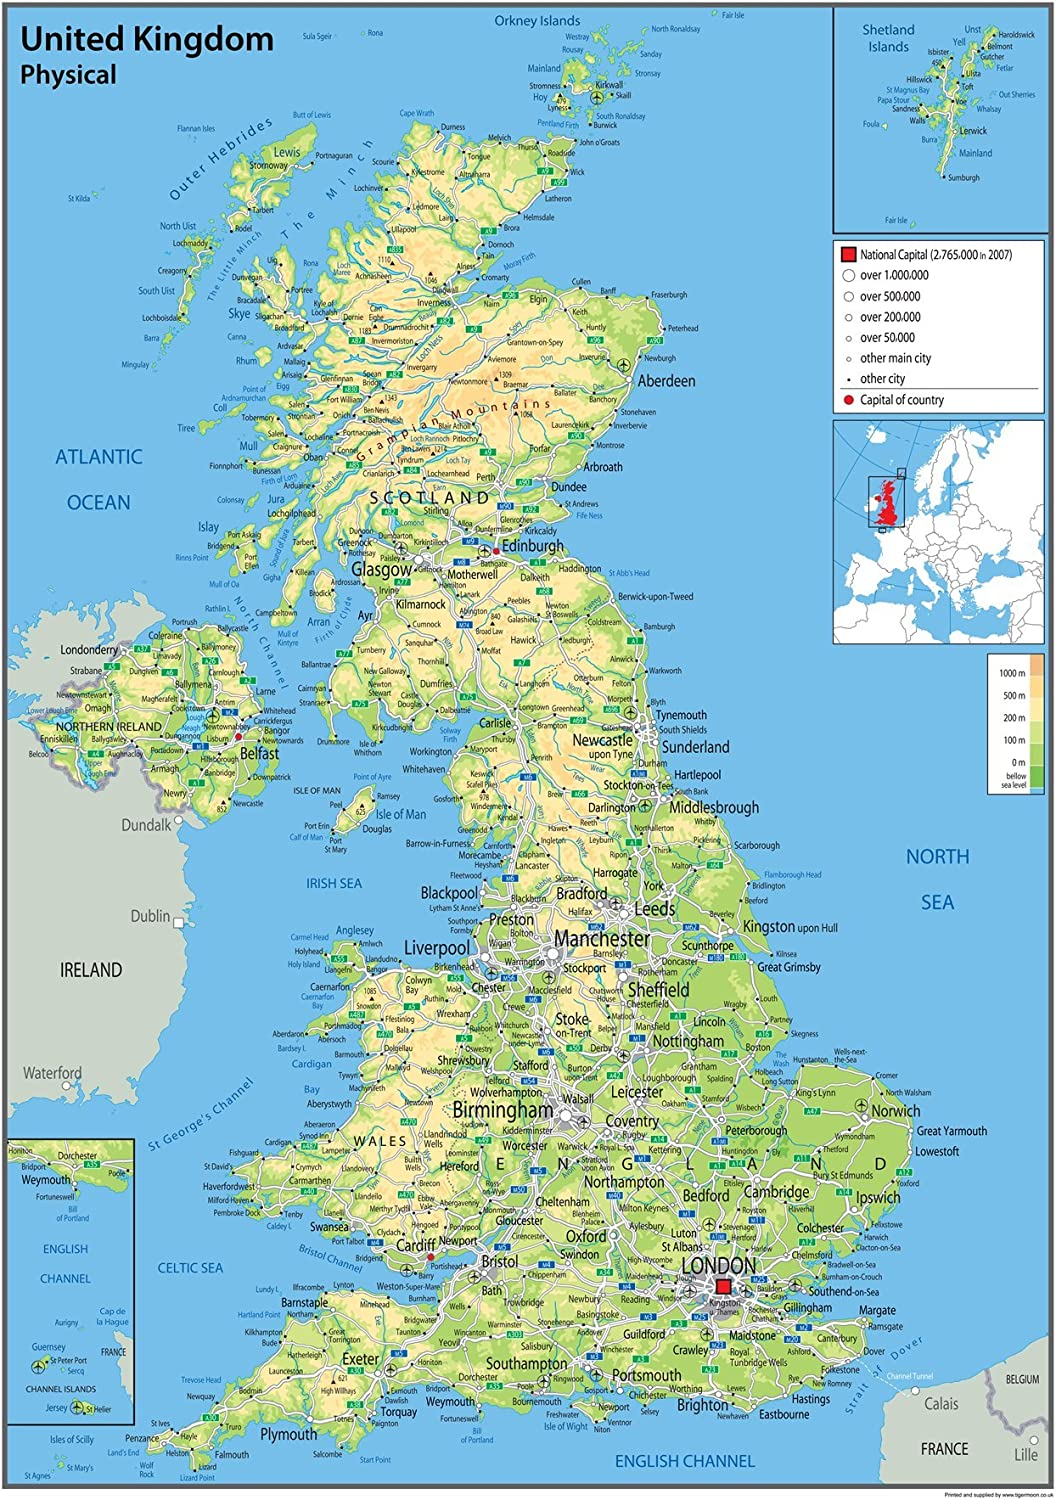 United Kingdom Uk Map Physical 59 4 X 84 1 A1 Centimetres Paper Laminated For Use In Classroom Office And Home Ga Amazon Co Uk Office Products